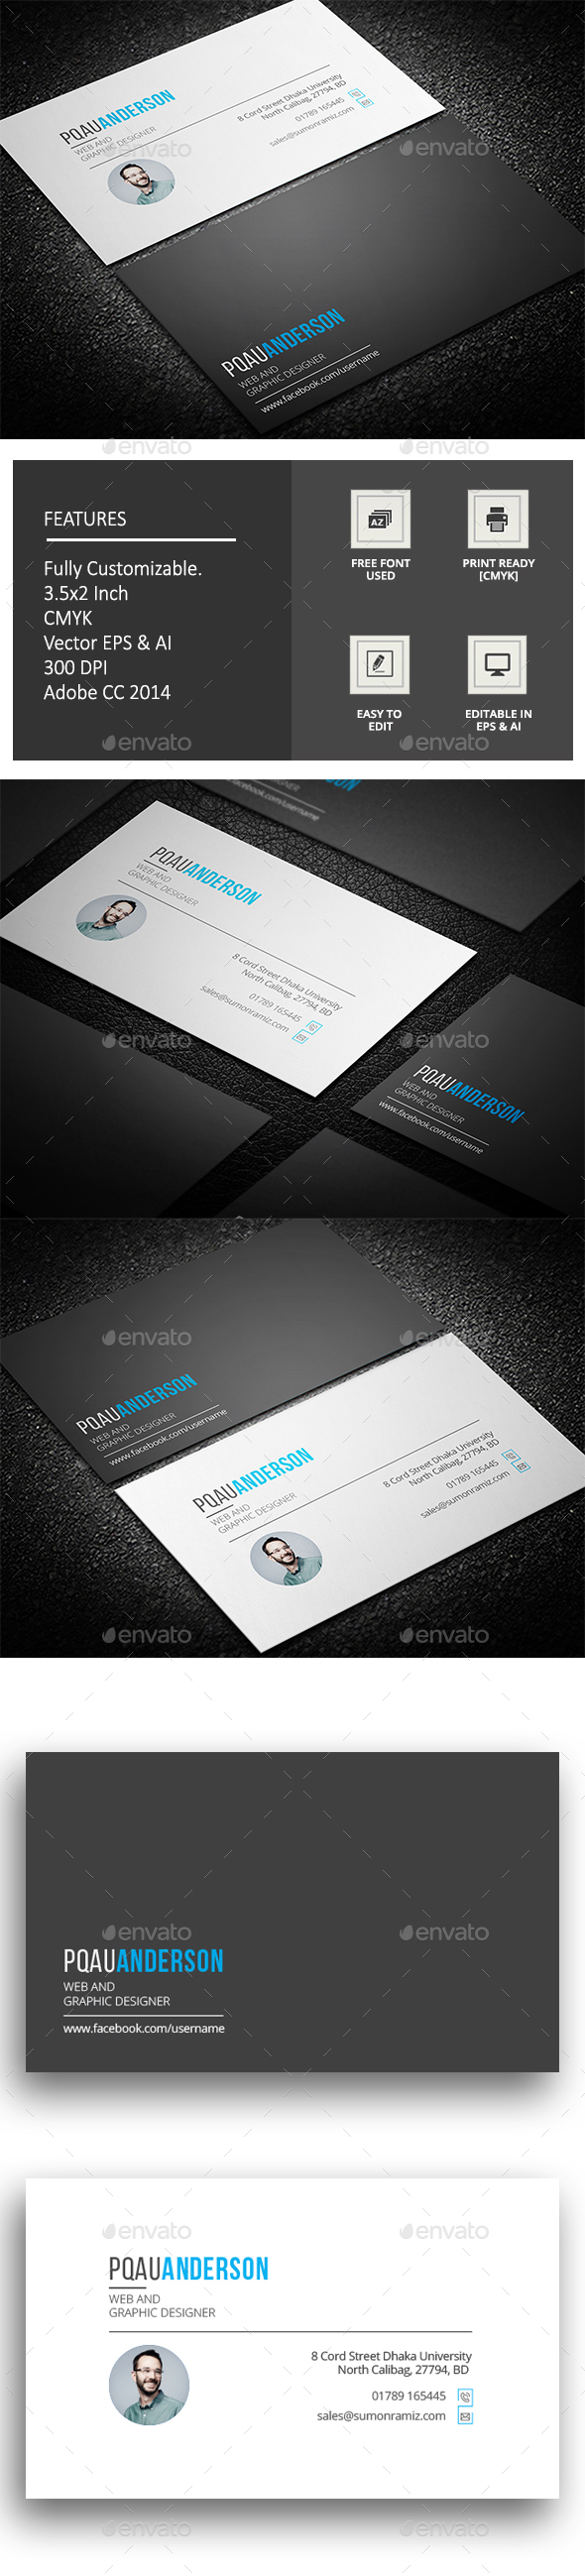 Pankha Business Card - Corporate Business Cards